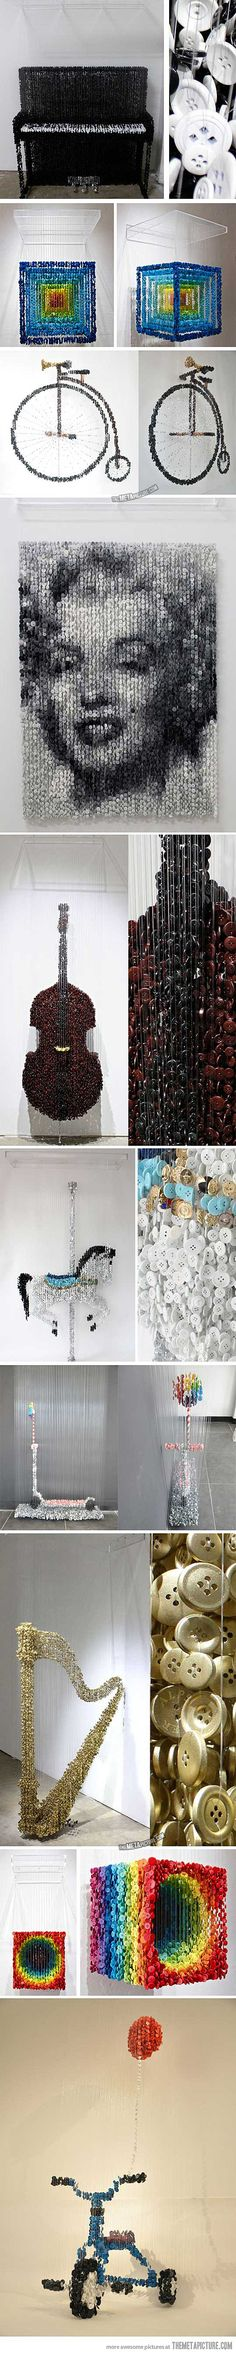 Sculptures made from suspended sewing buttons…